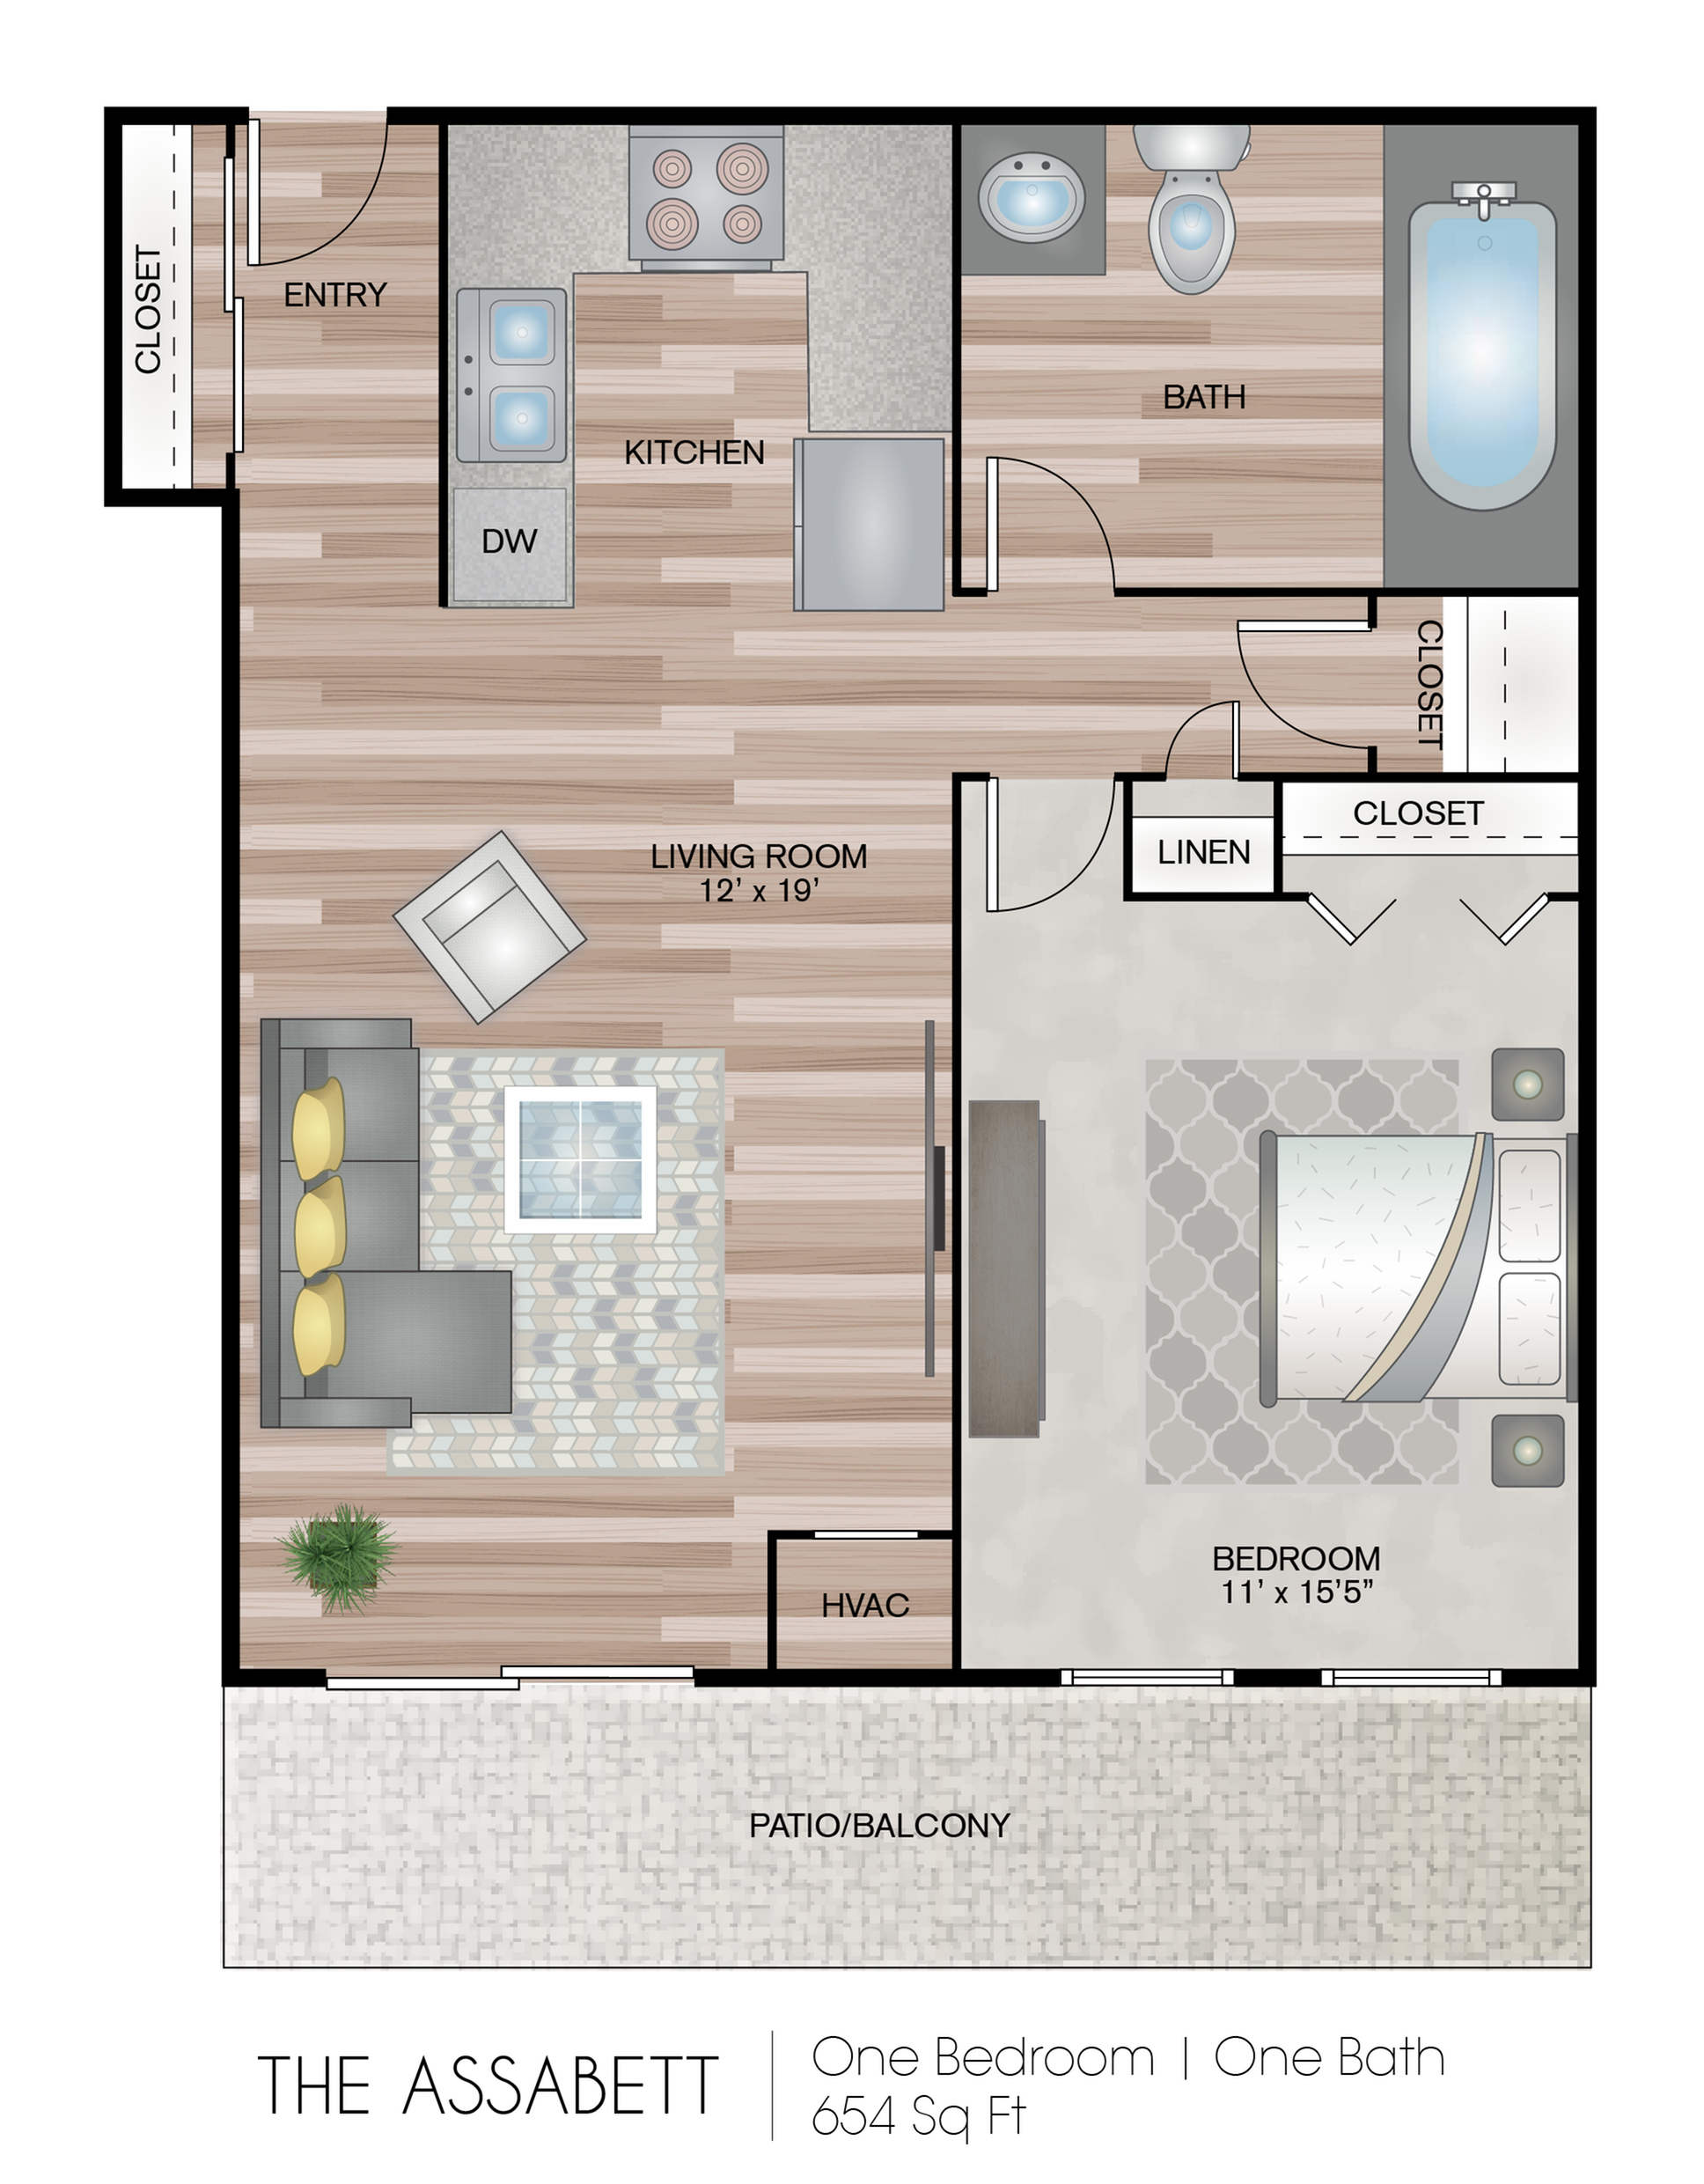 1-Bed, 1- Bath Affordable Unit